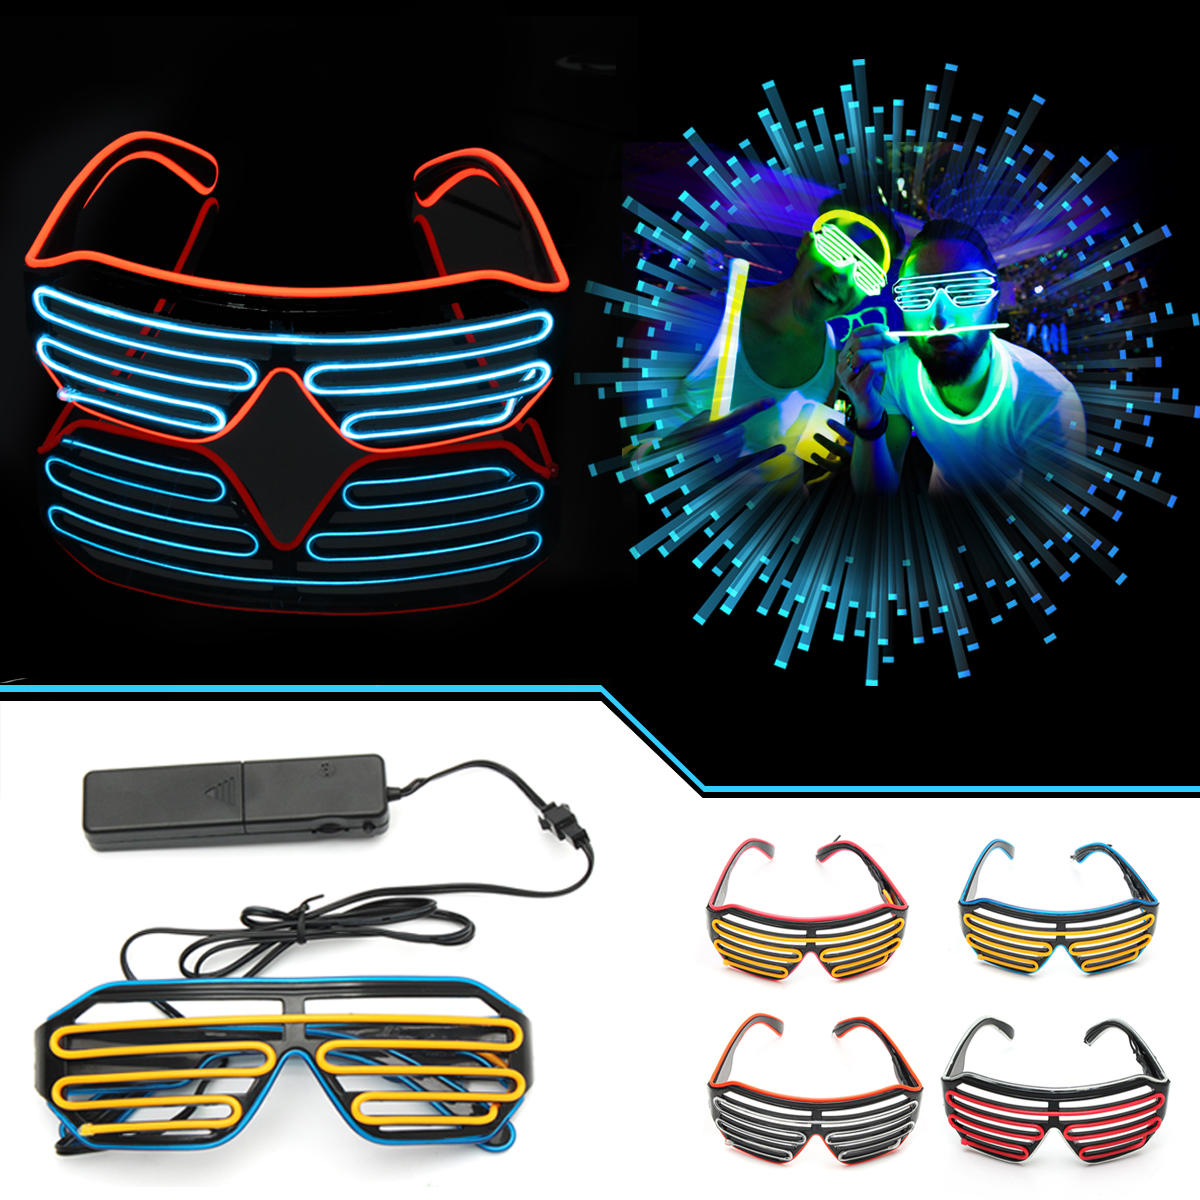 Well-Educated Led Wire Glasses Light Up Glow Sunglasses Eyewear Shades For Nightclub Party Night Vision Glasses Men's Night Vision Glasses Men's Glasses